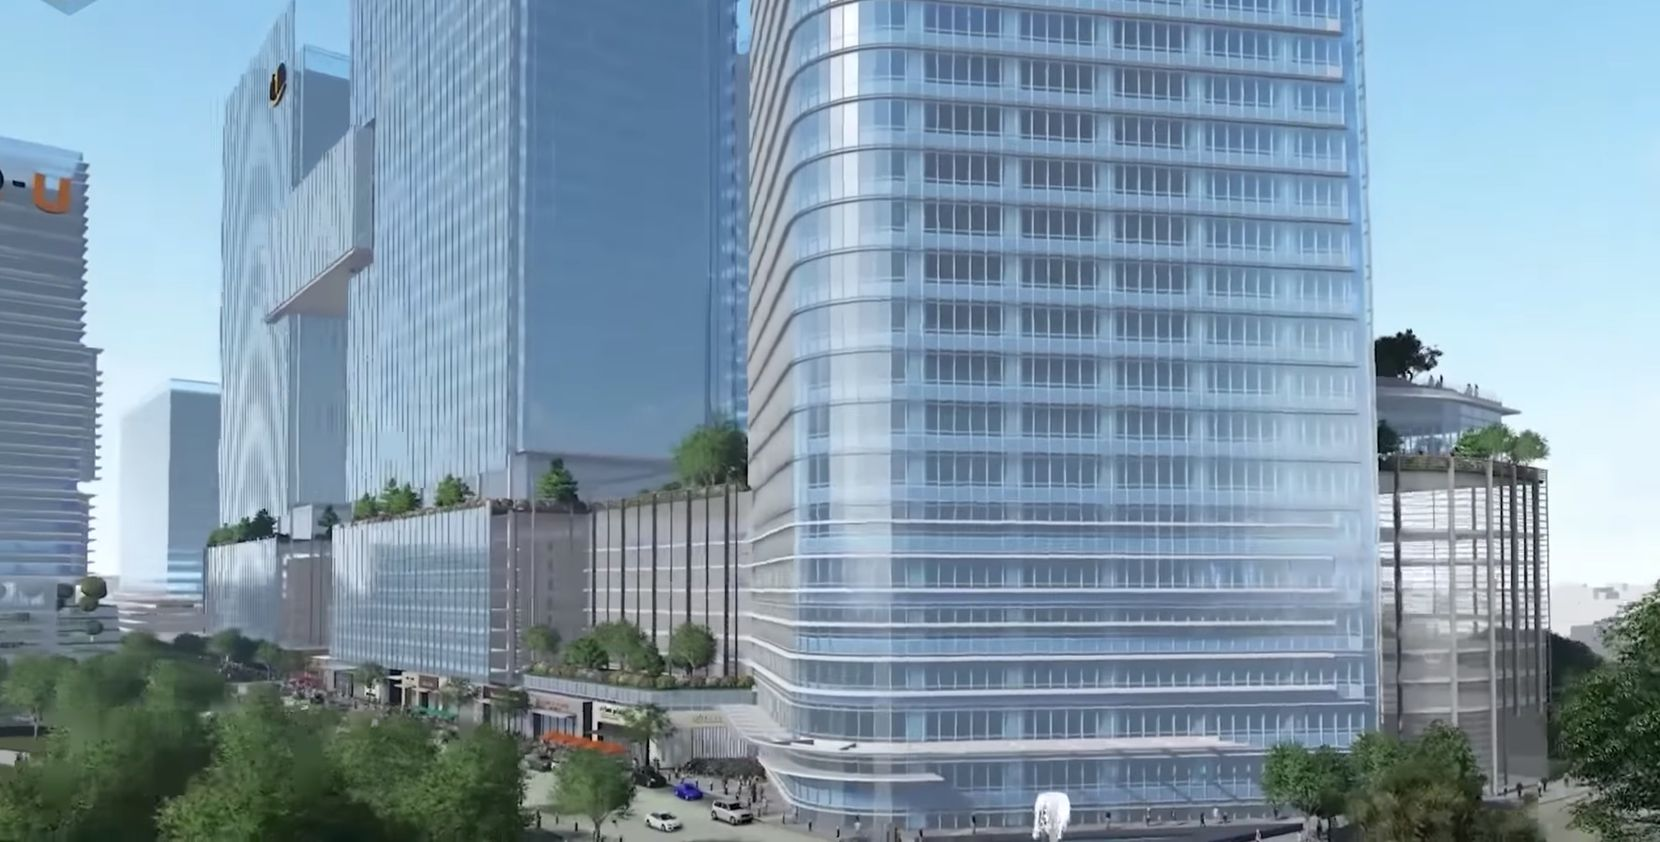 With the Amazon decision made, KDC is pitching its huge high-rise campus on the south side of downtown to other companies.